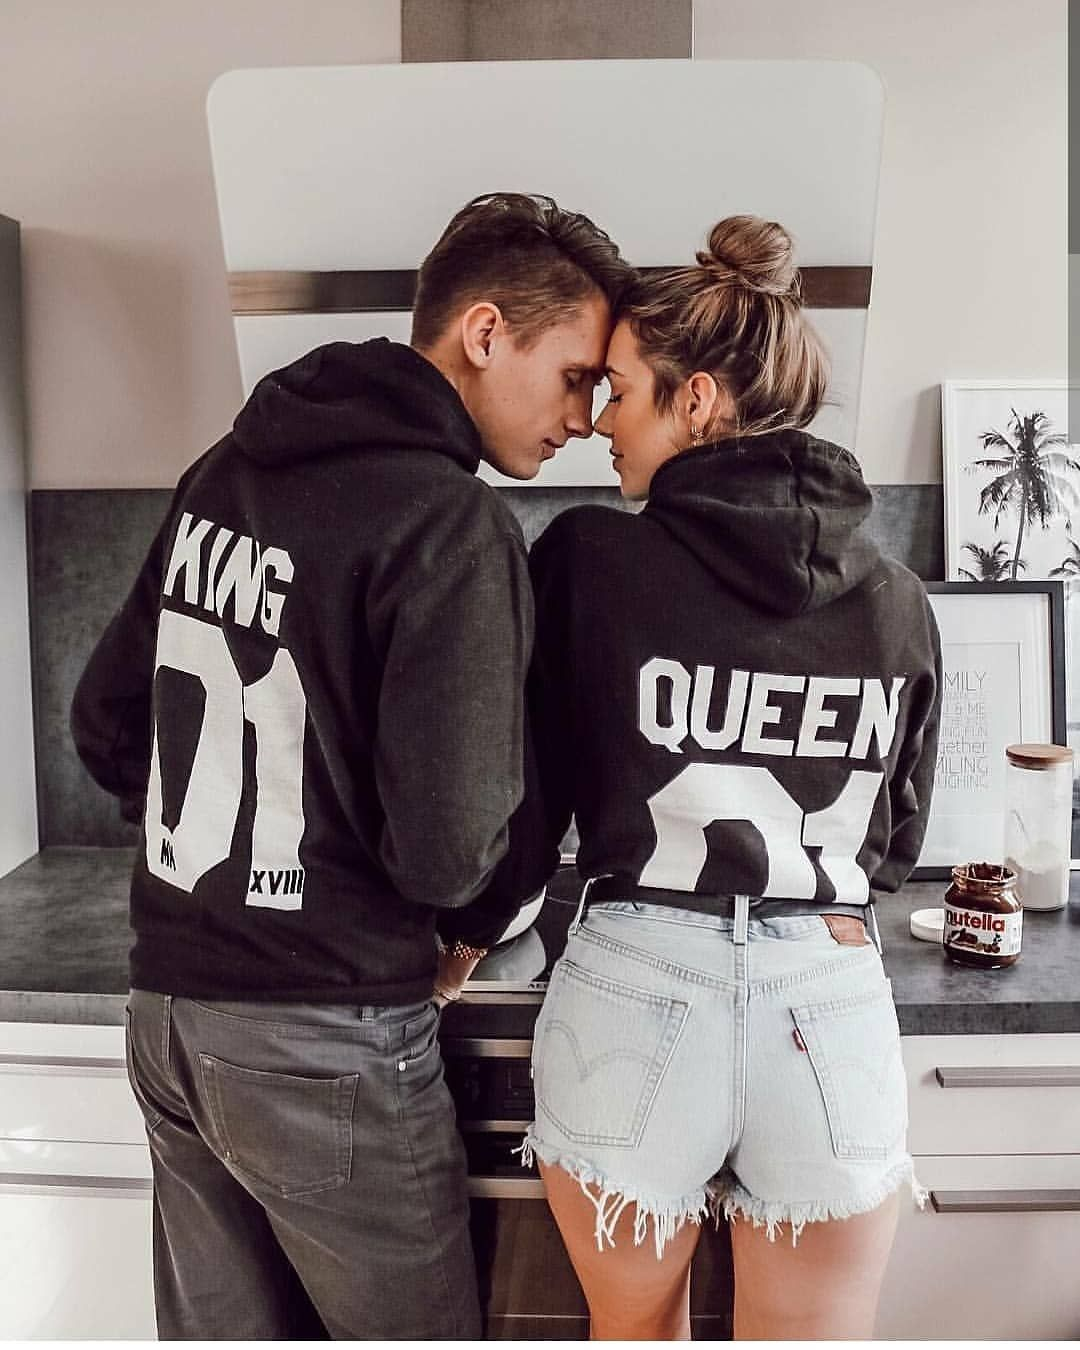 Fashionshelves On Instagram Couple In Love Fashionshelves Cute Couple Pictures Couple Goals Relationships Cute Couples Goals